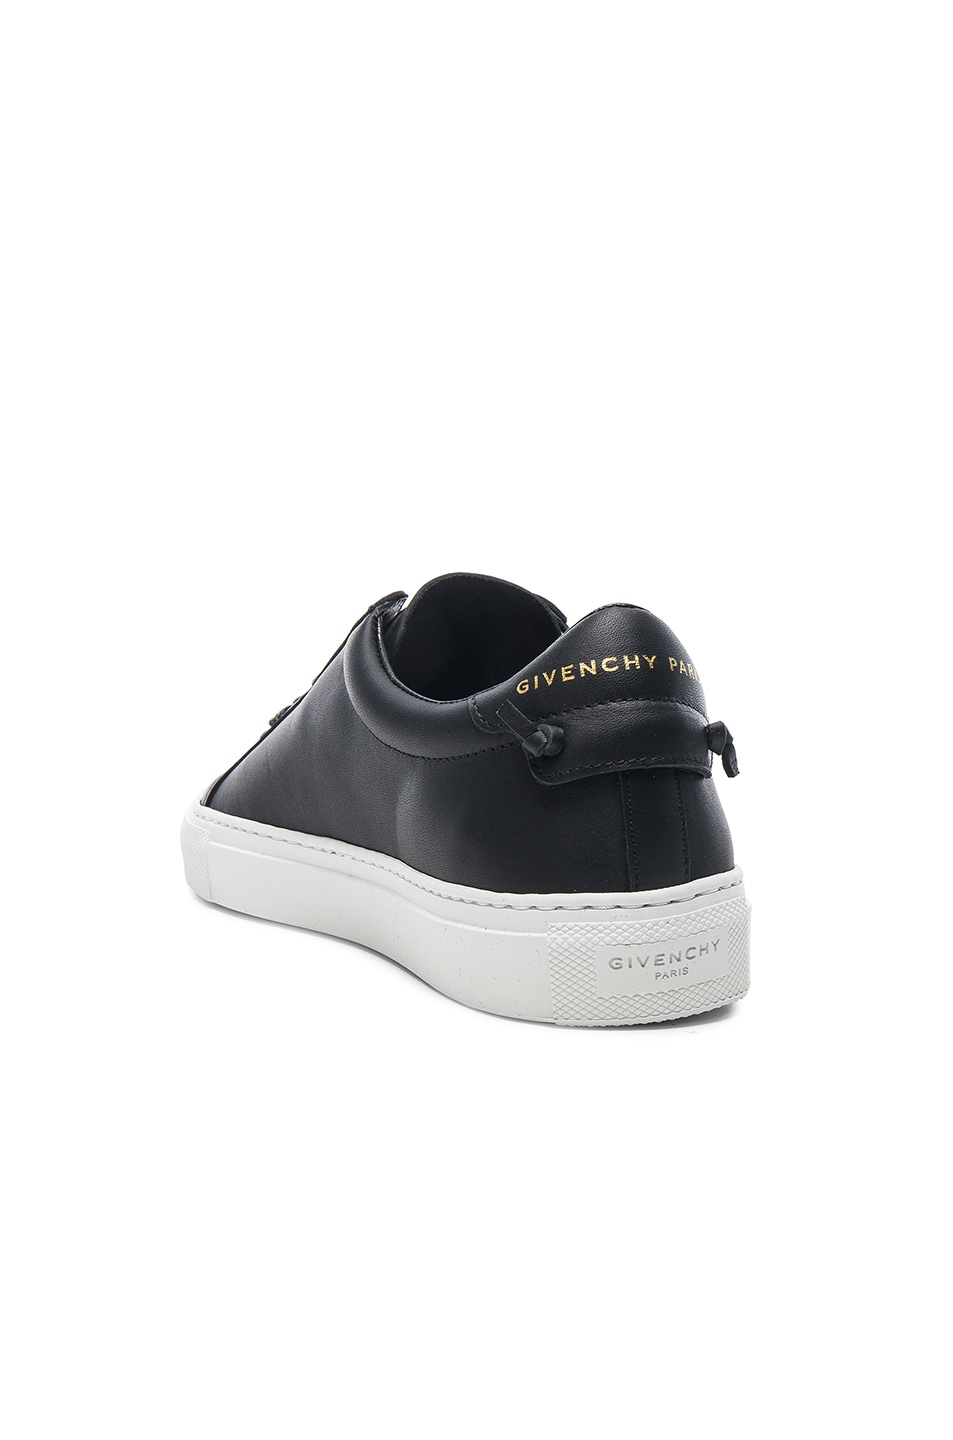 Image 3 of Givenchy Knots Leather Low Sneakers in Black